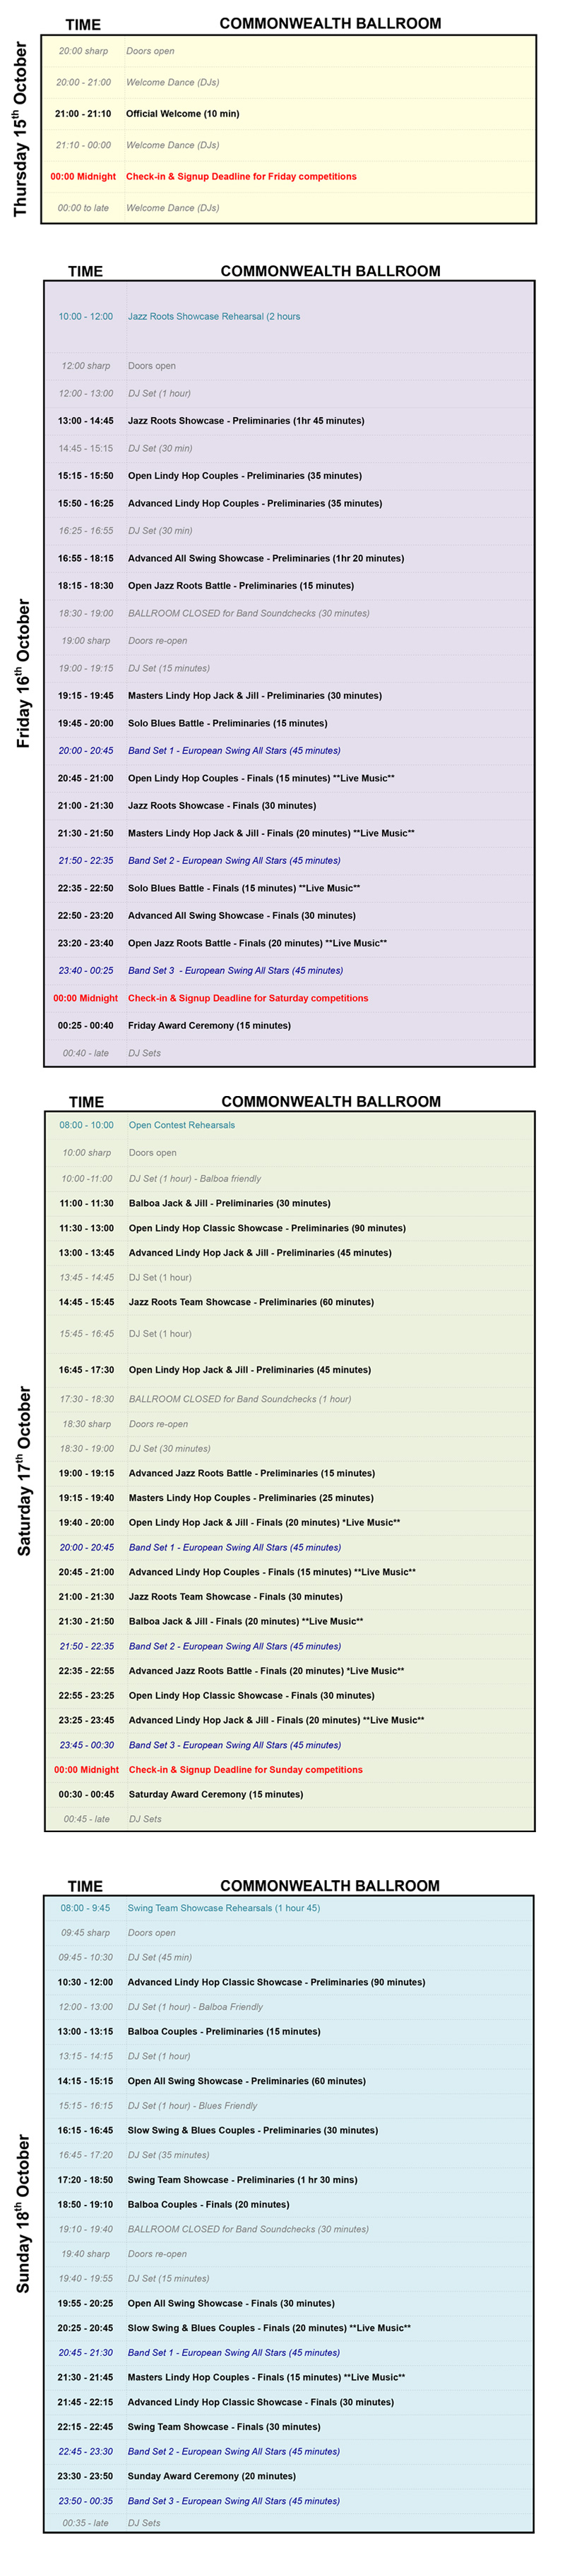 Commonwealth Ballroom Schedule